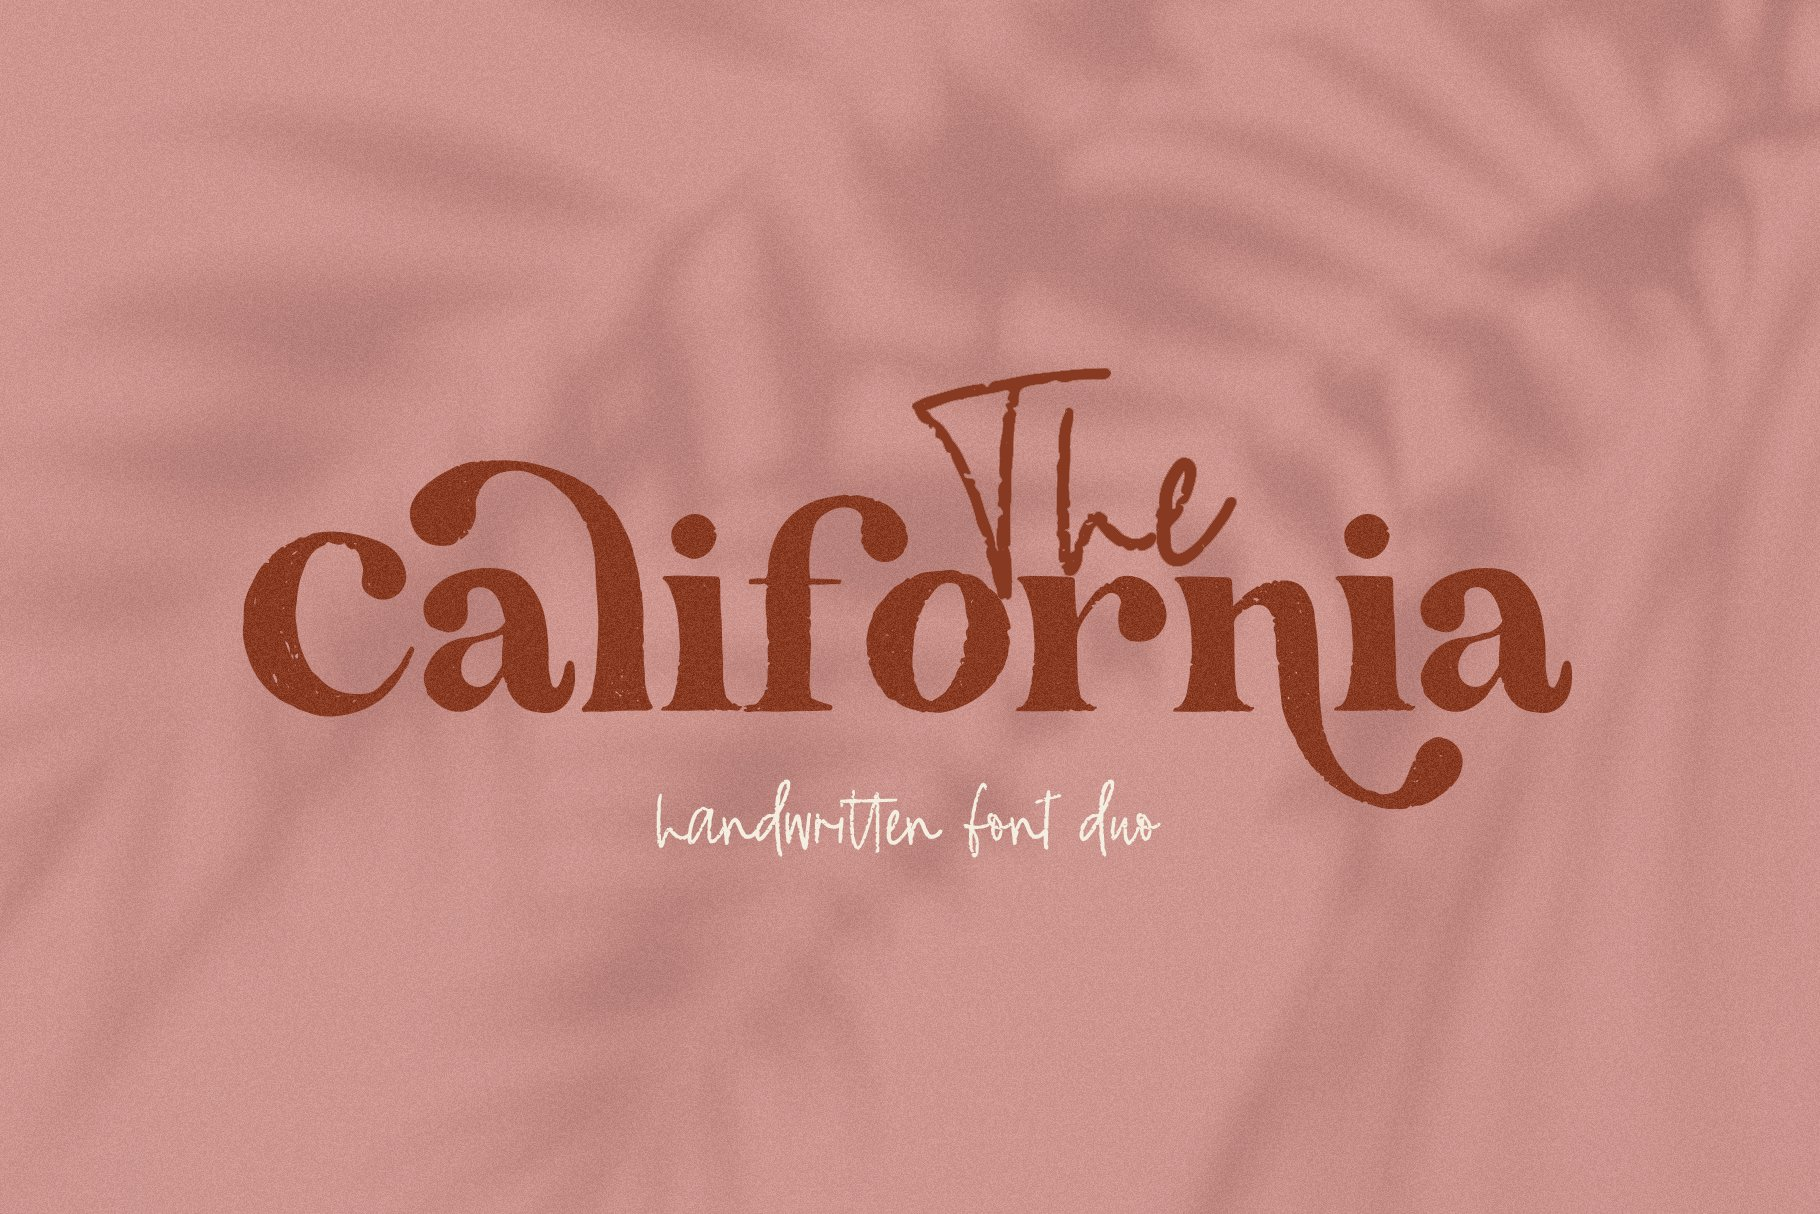 thecalifont 2